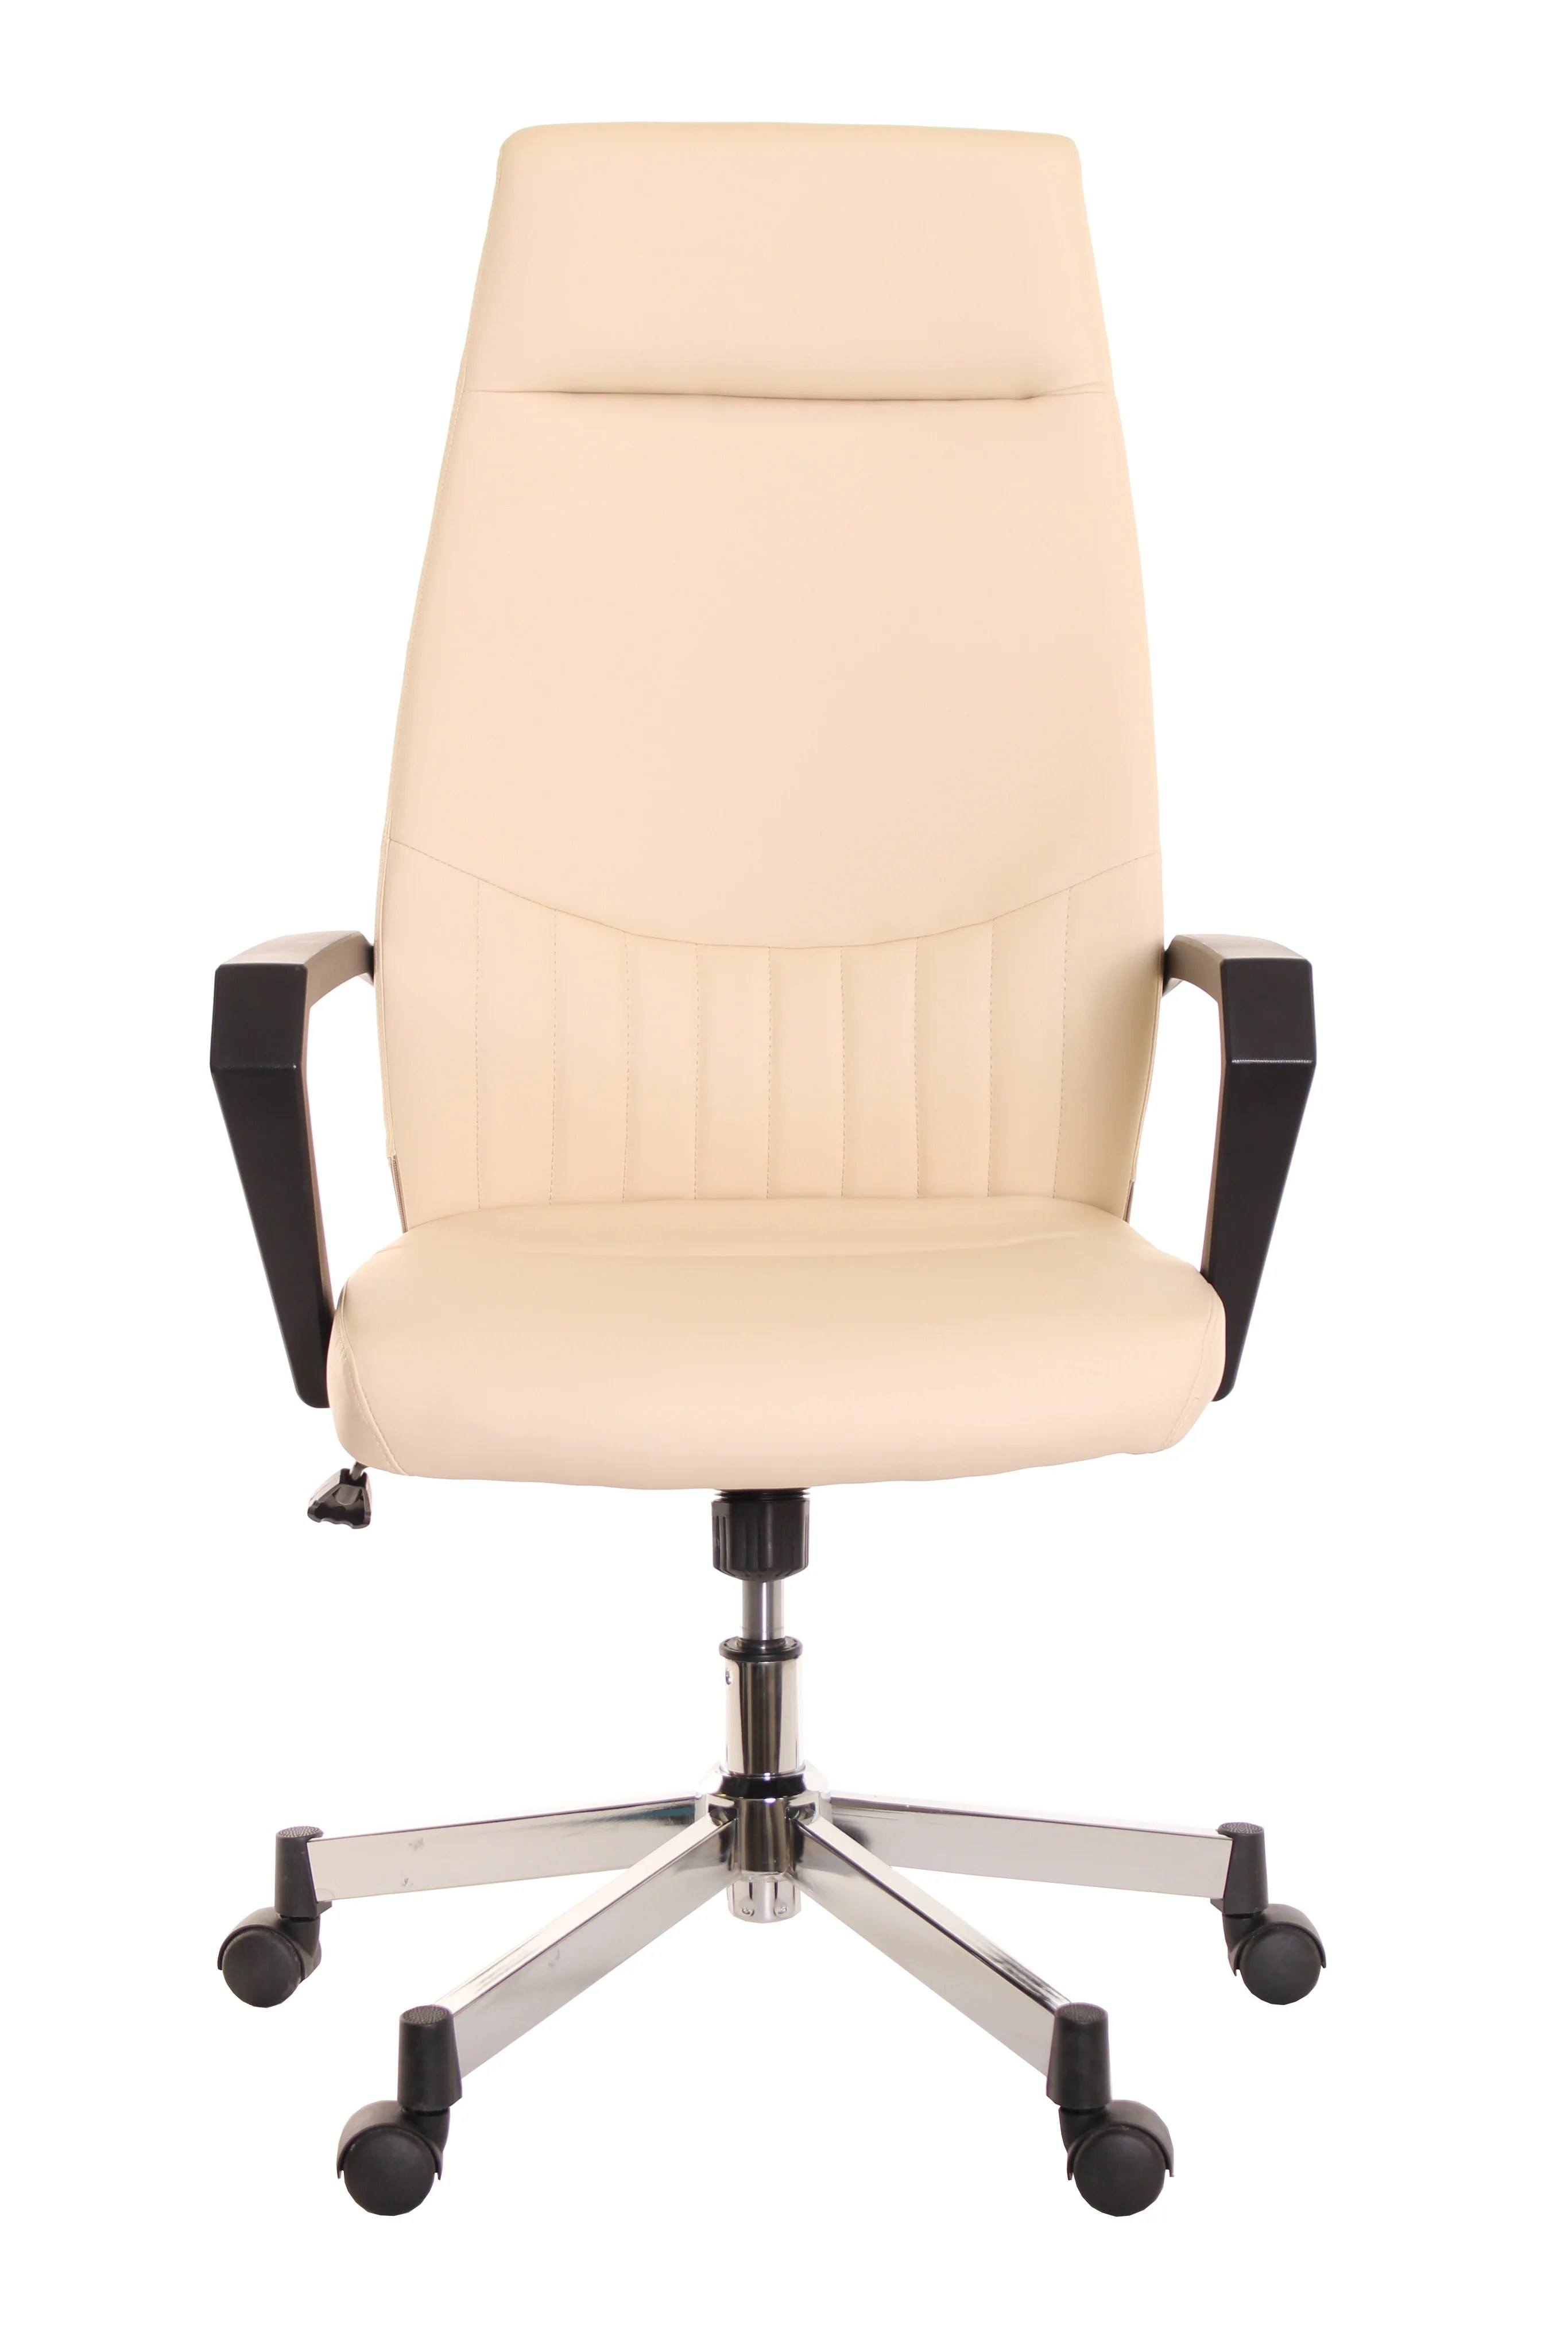 ivory leather office chair vibrating baby bouncer high back task ergonomic by timeoffice